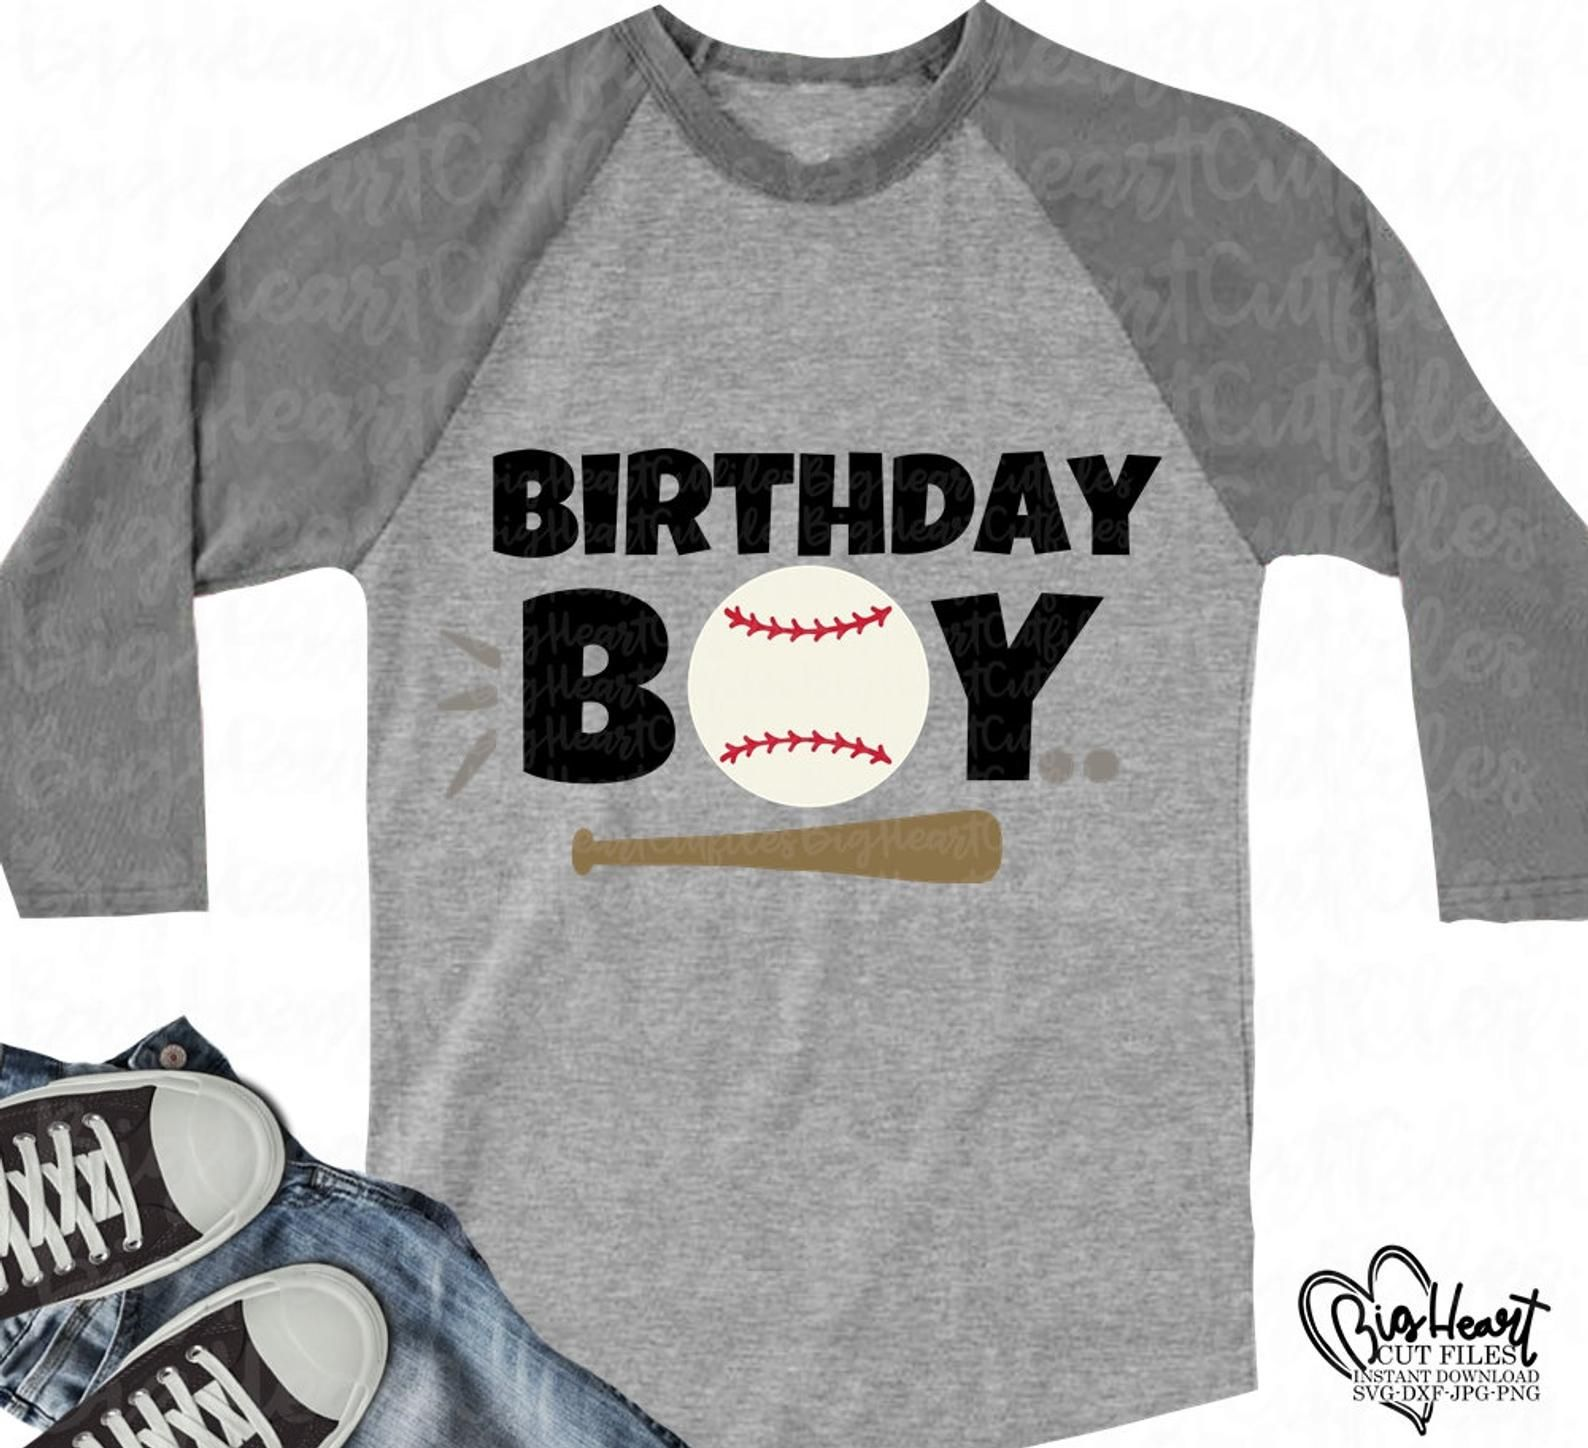 Baseball Svg, Baseball Birthday Boy Svg,Png,Jpg,Dxf, Boy ...